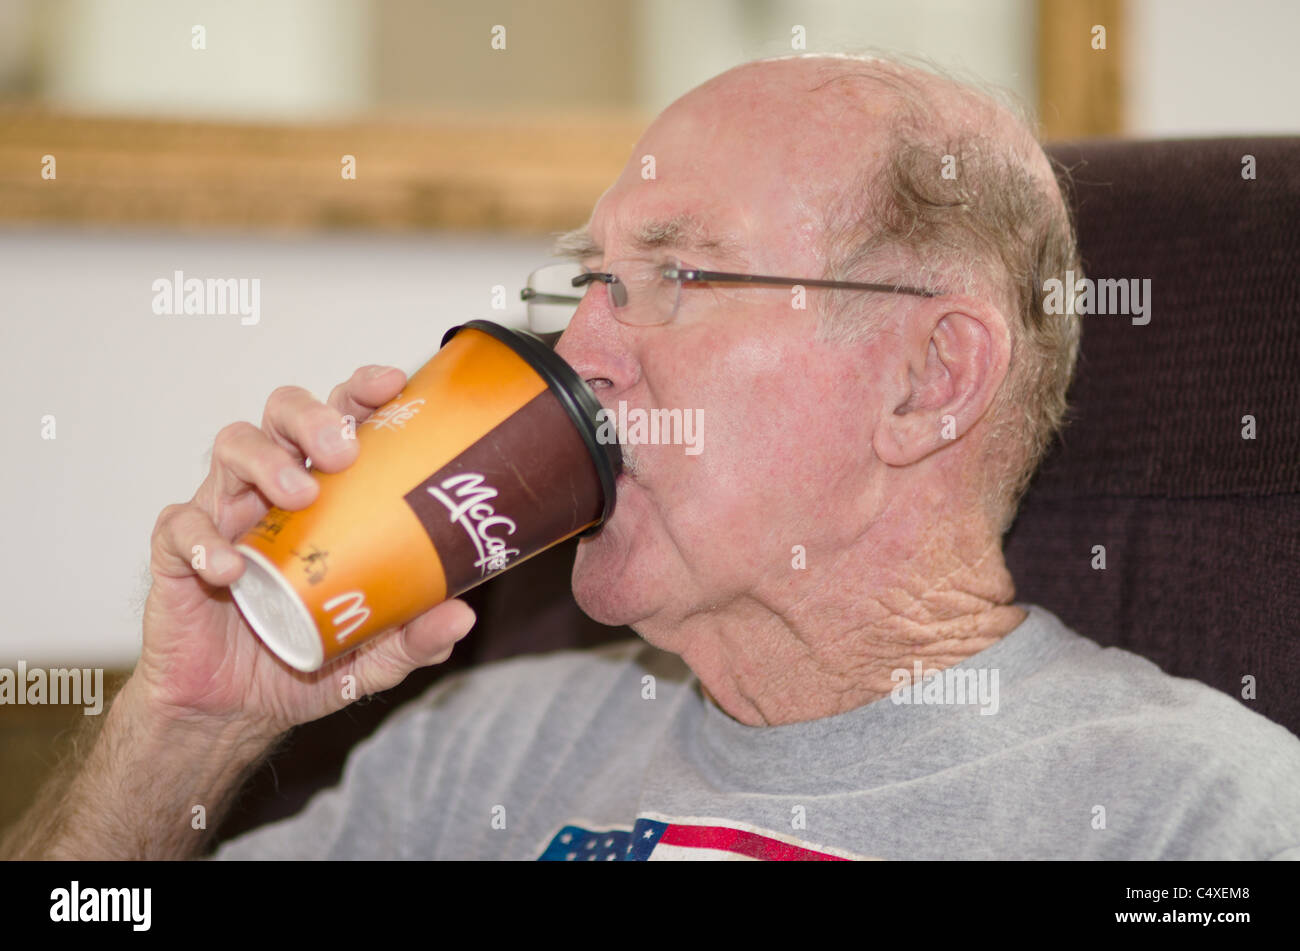 An elderly Causasian man drinks coffee from a McDonald's cup in his own home. USA - Stock Image